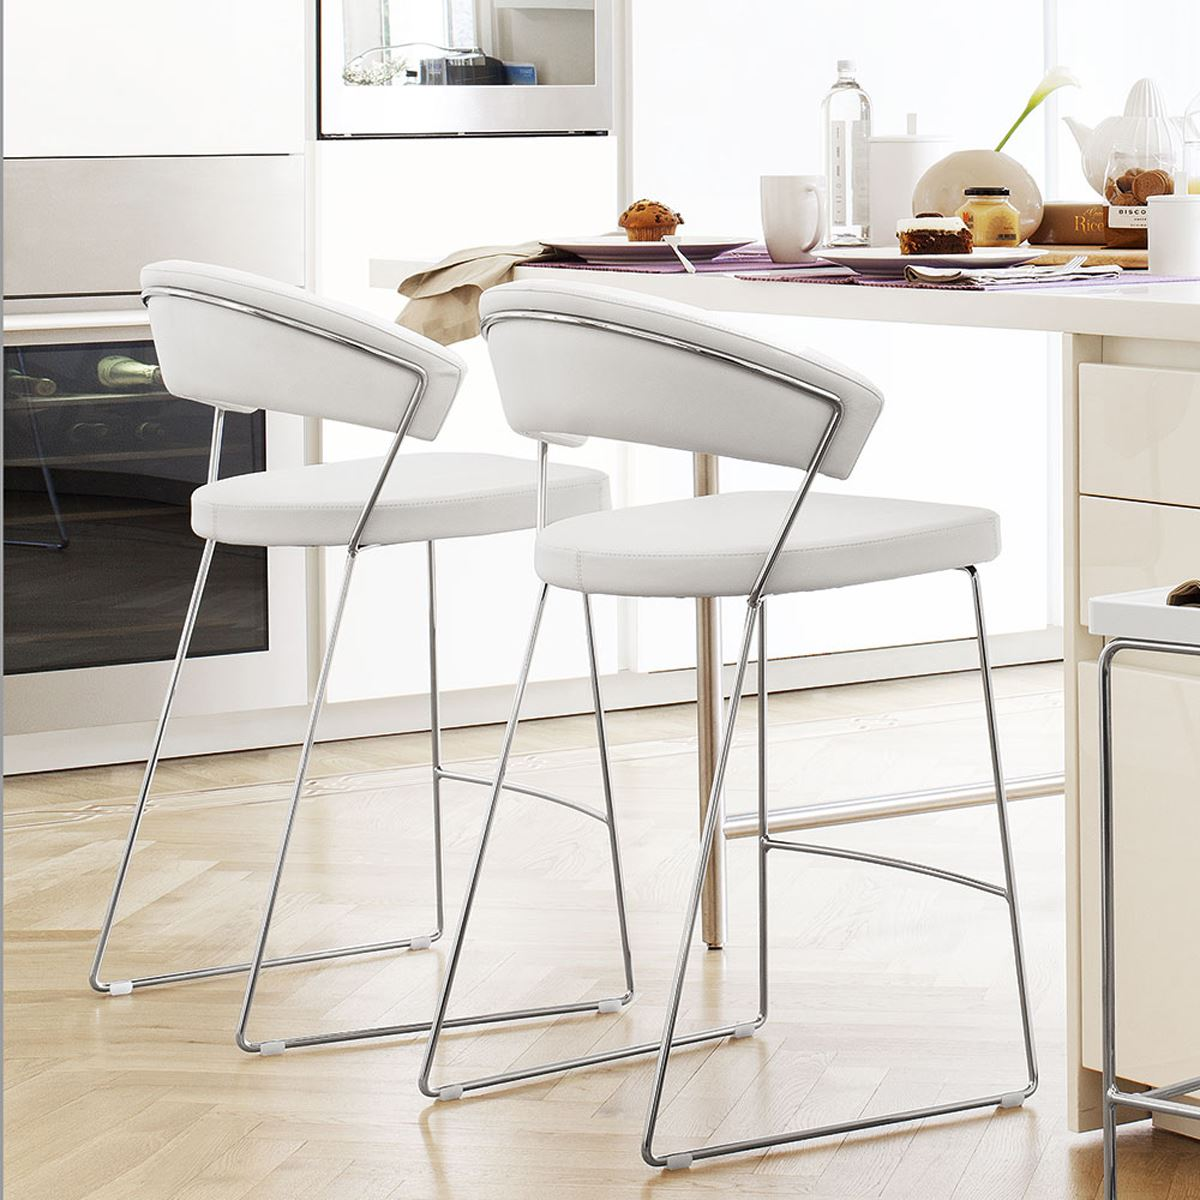 Italian bar stools elegant bar stools industrial counter eclectic design classic dining with - Classic bar counter design ...